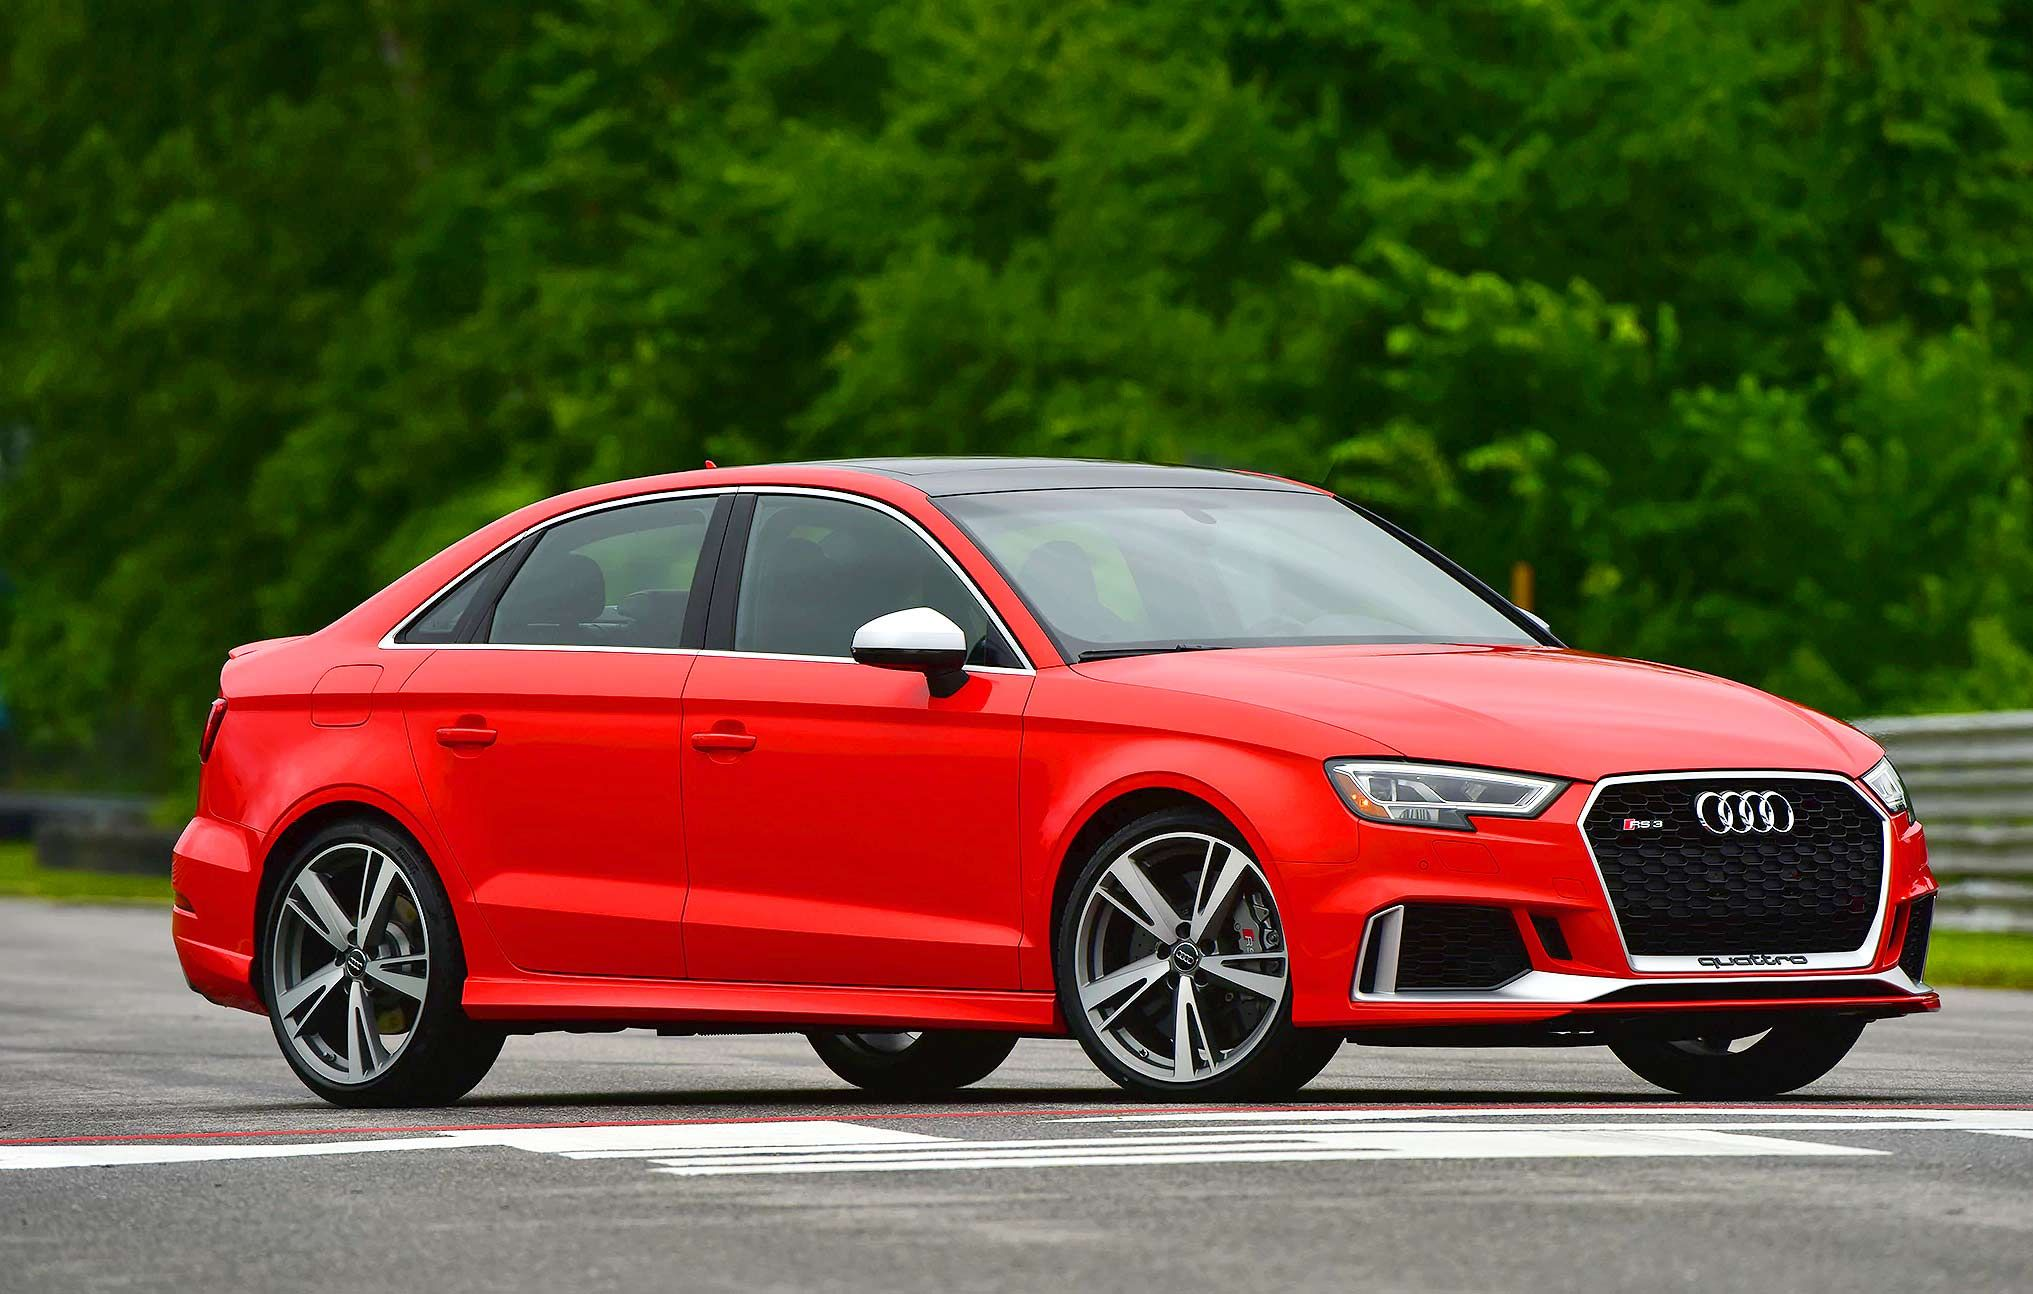 2019 Audi Rs3 Engine Specs And Performance Audi Rs3 Audi Rs3